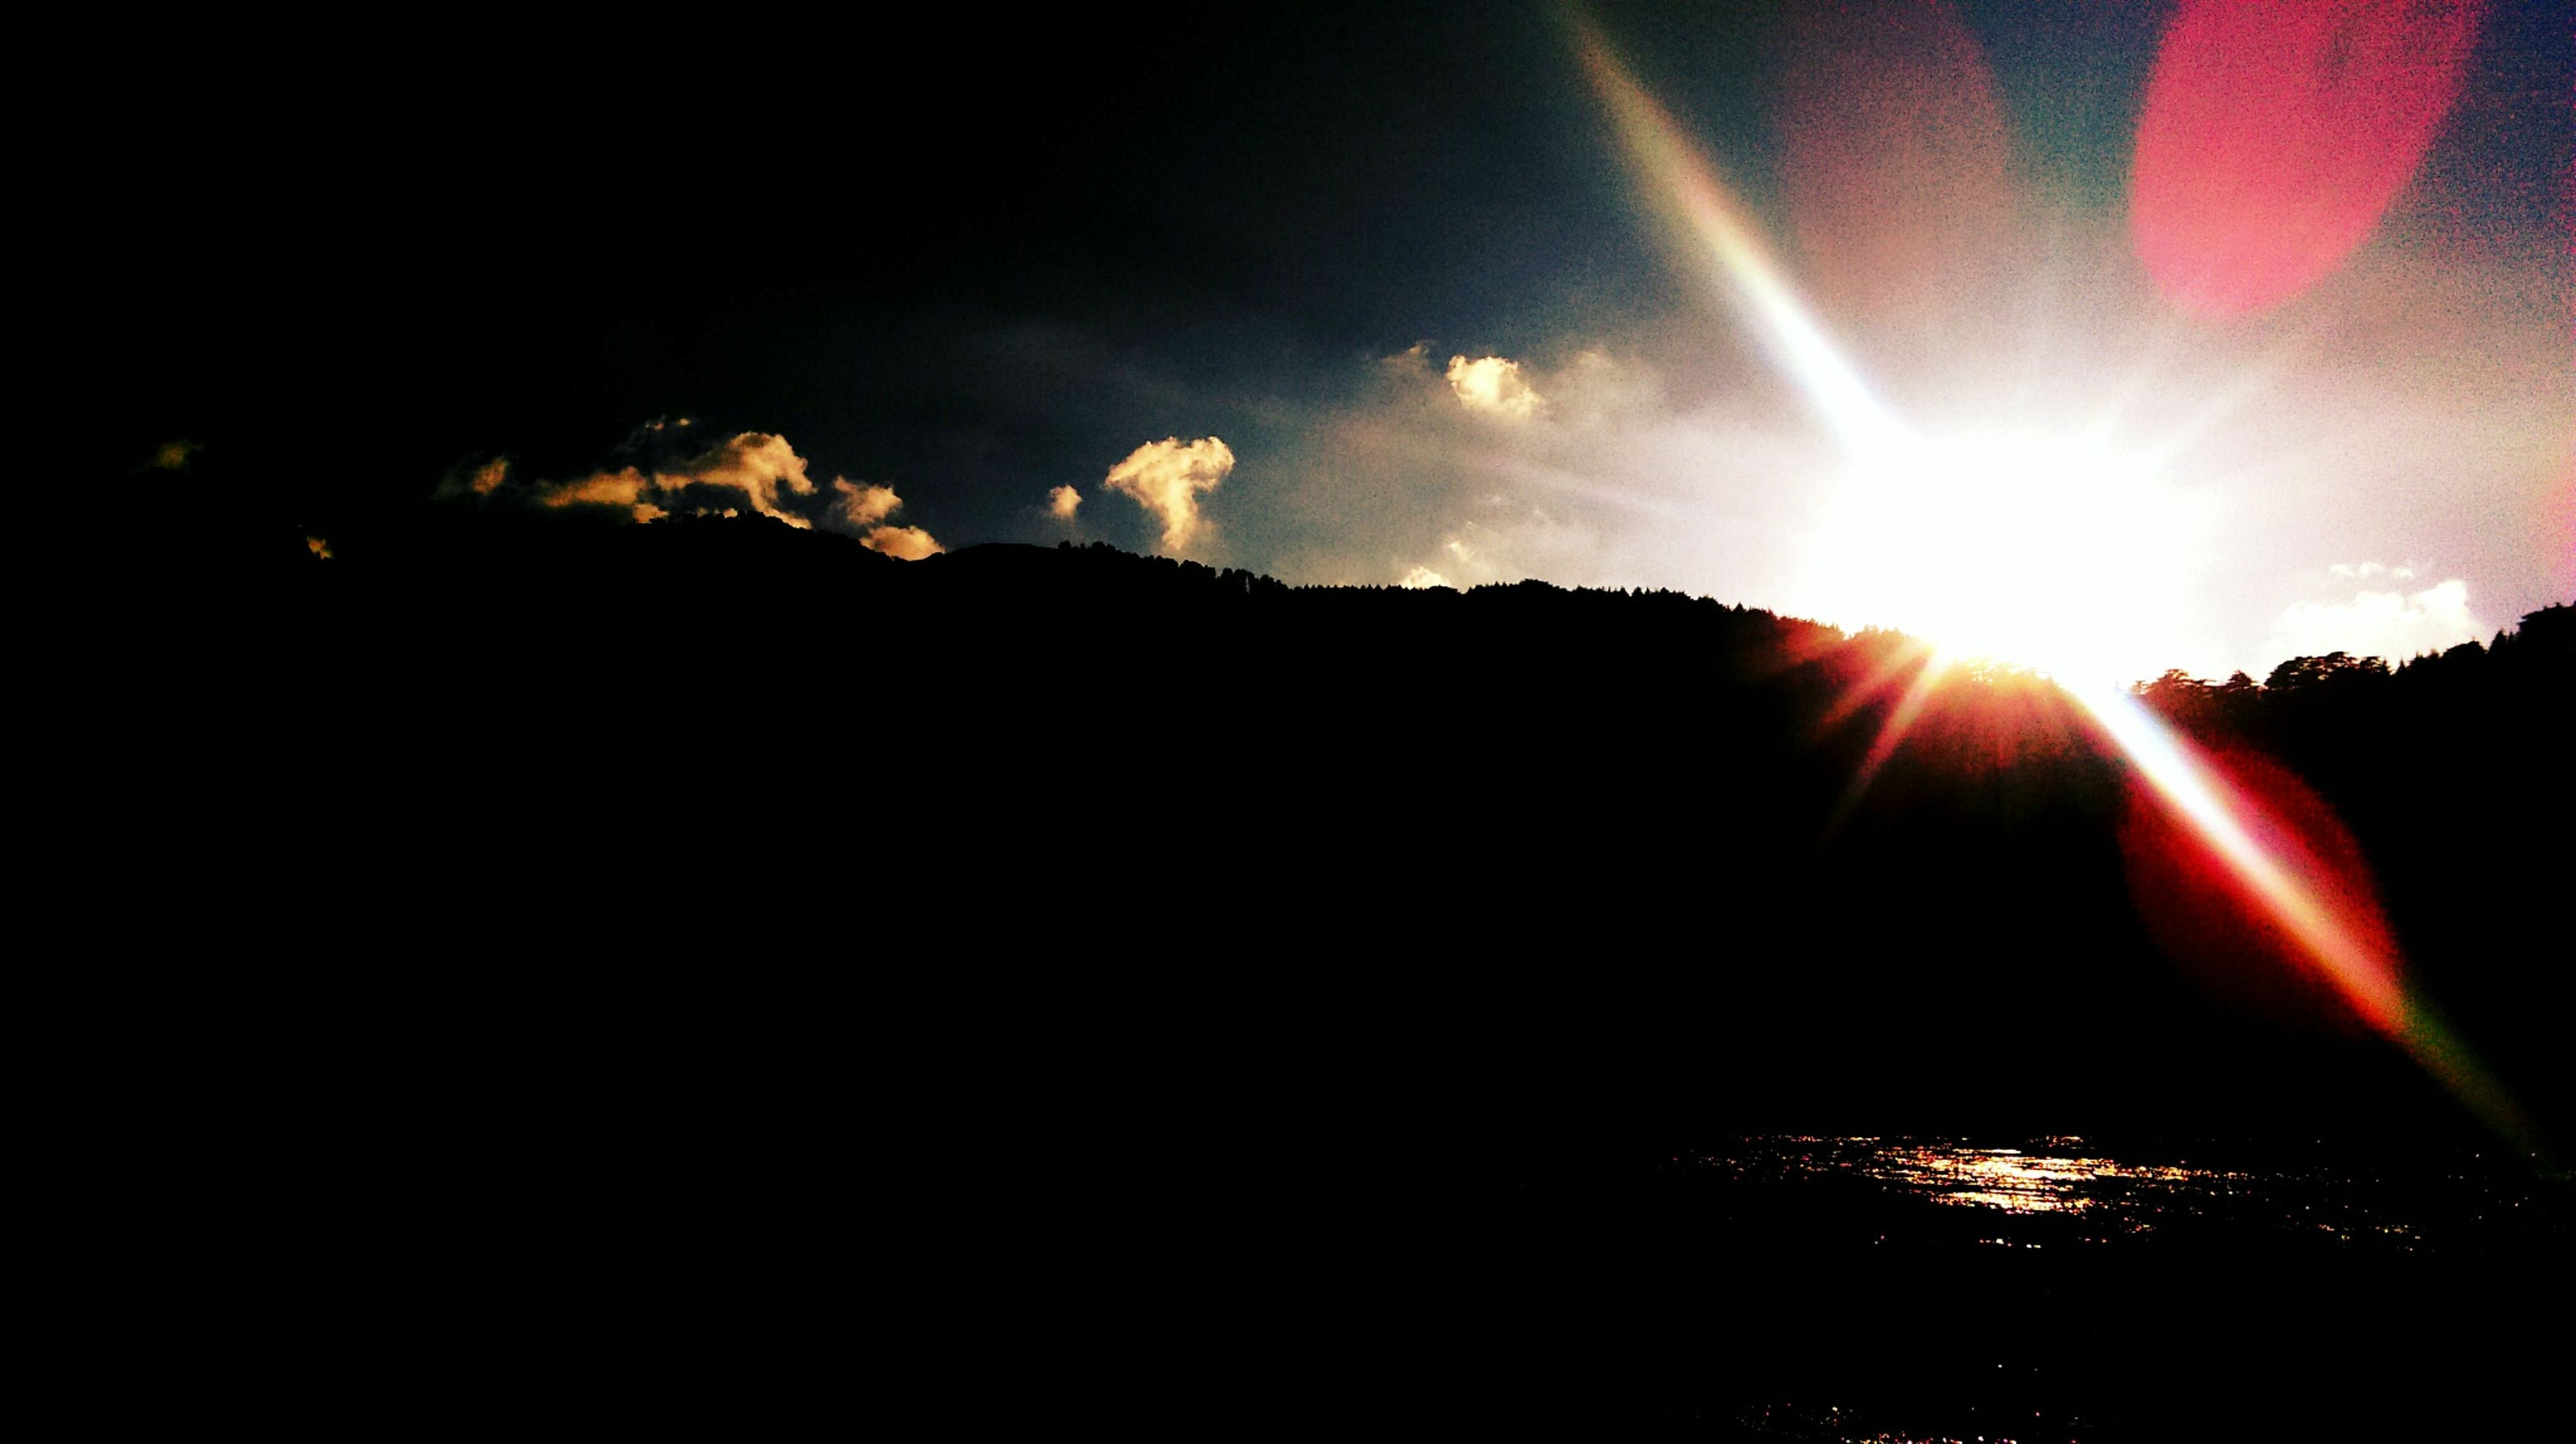 sun, sunbeam, sunlight, sunset, lens flare, sky, tranquil scene, scenics, silhouette, beauty in nature, tranquility, glowing, nature, idyllic, back lit, bright, outdoors, no people, cloud - sky, burning